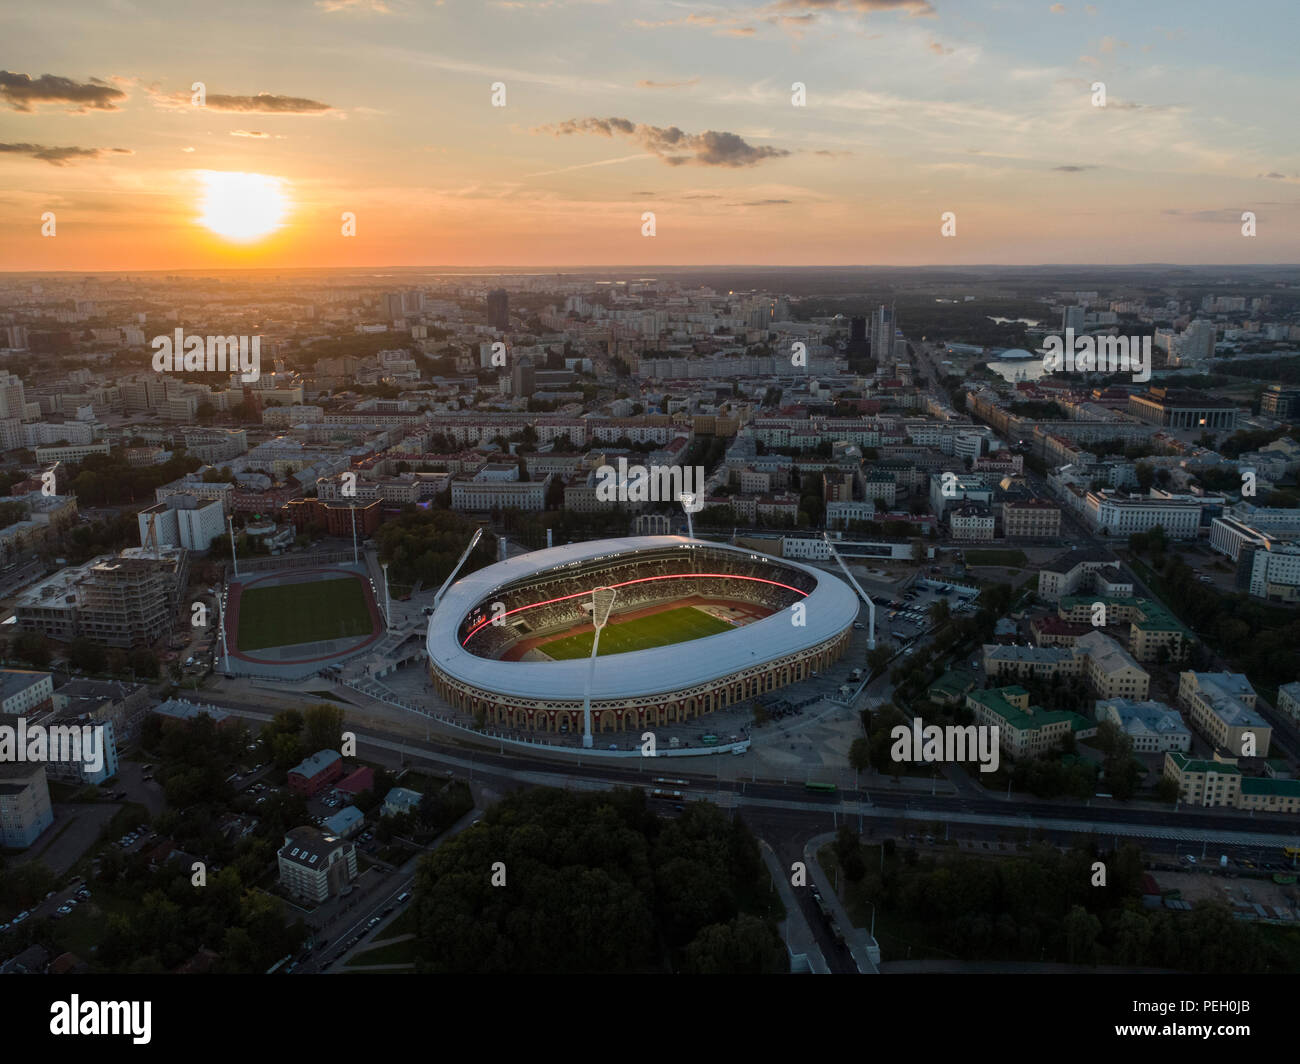 Minsk, Belarus, August 14 2018 - National Olympic Stadium Dinamo is a multi-purpose football and athletic stadium in Minsk, Belarus, reopened after a  - Stock Image